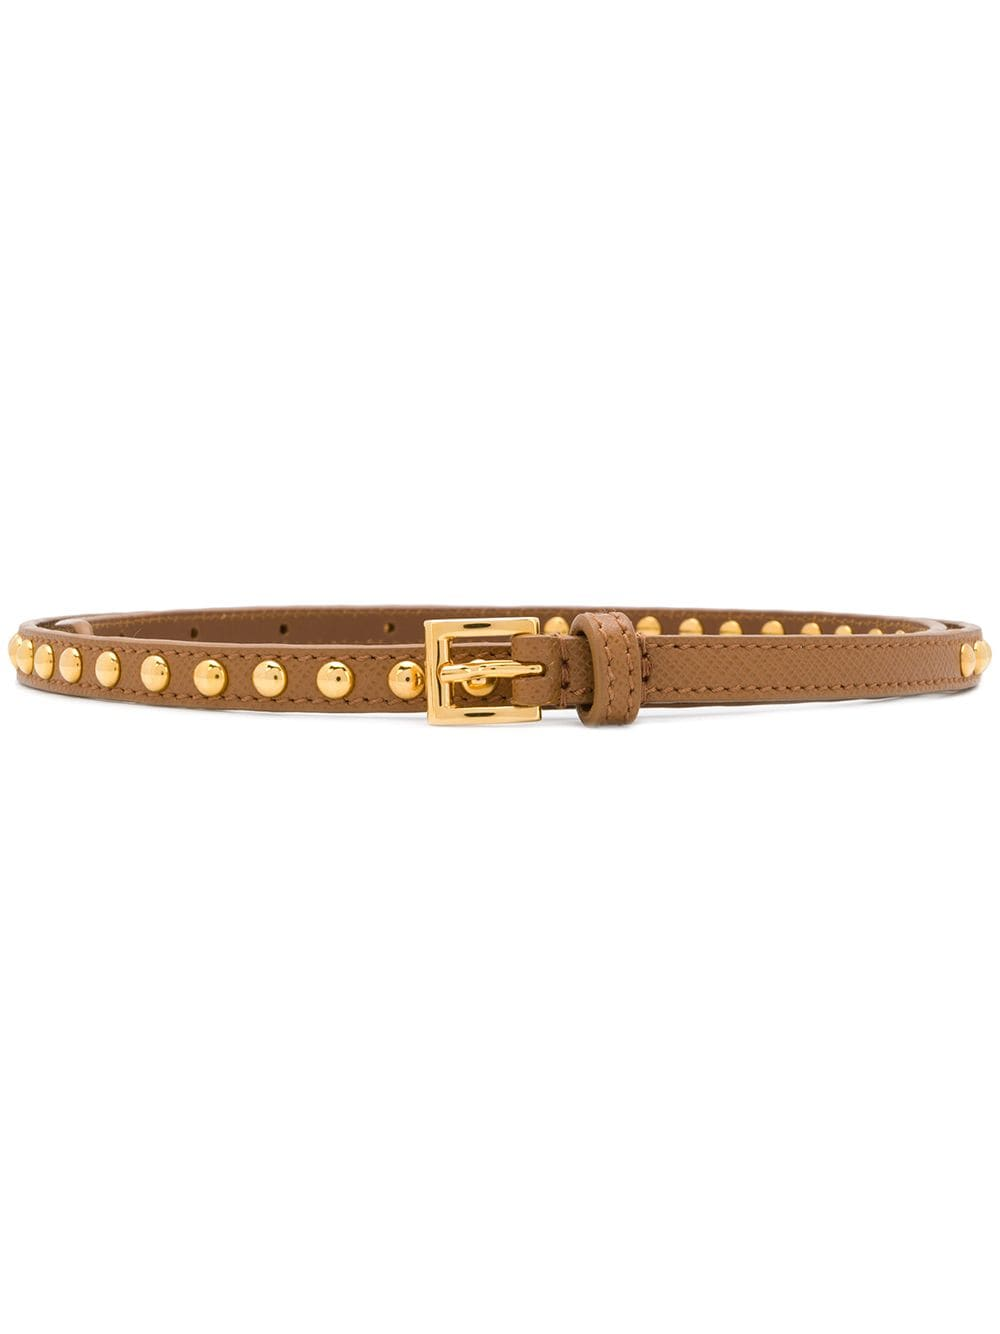 Prada stud detail belt - Brown von Prada